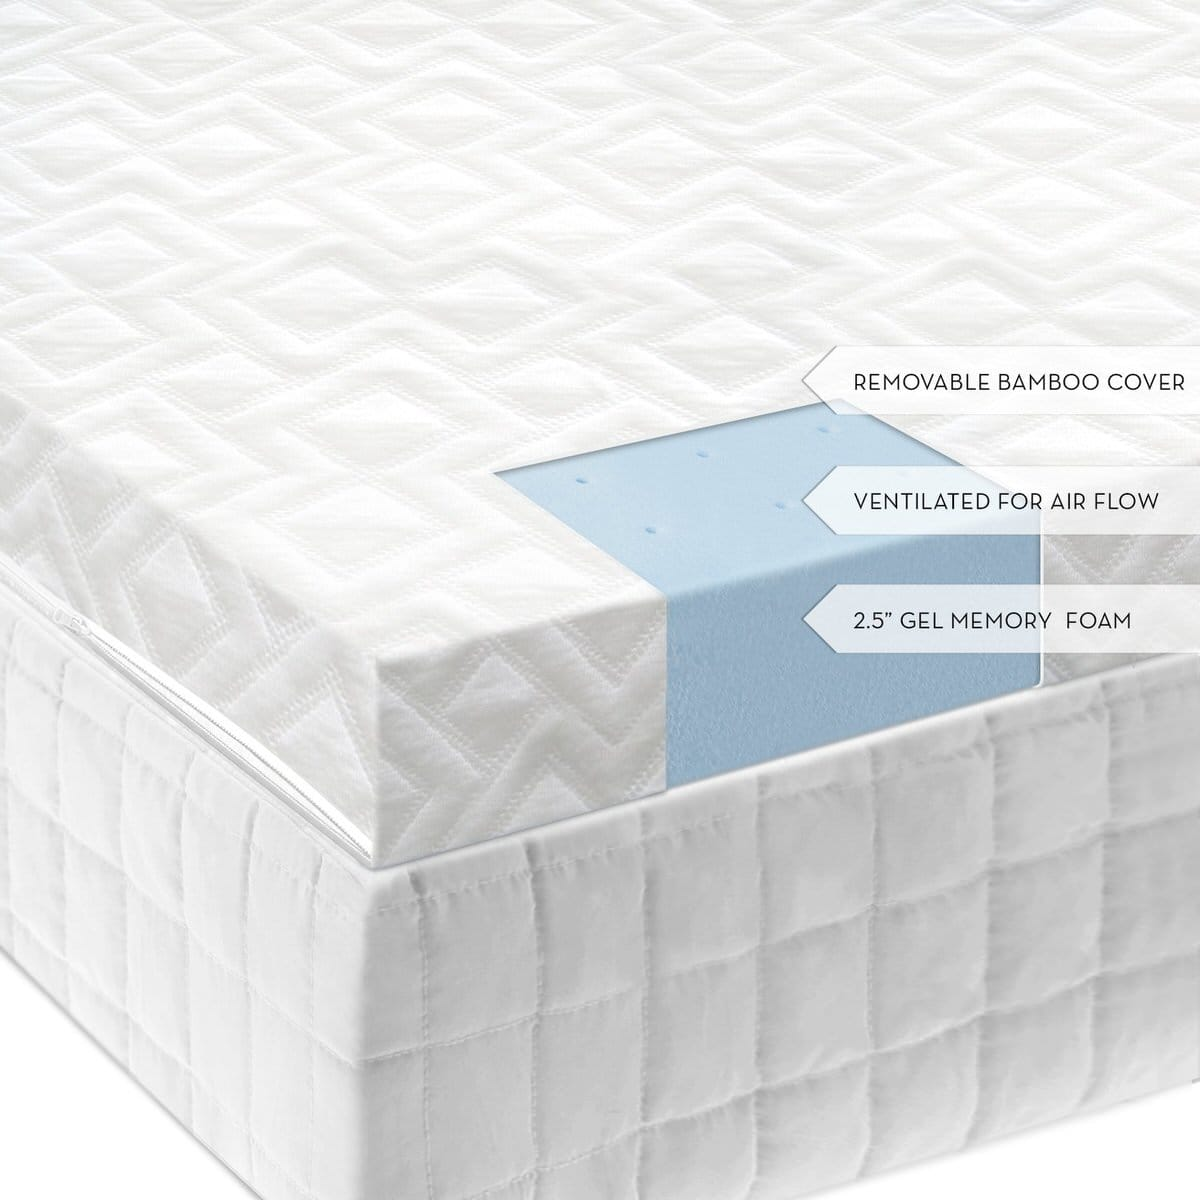 2 5 Inch Gel Memory Foam Mattress Topper By Comfort Pure